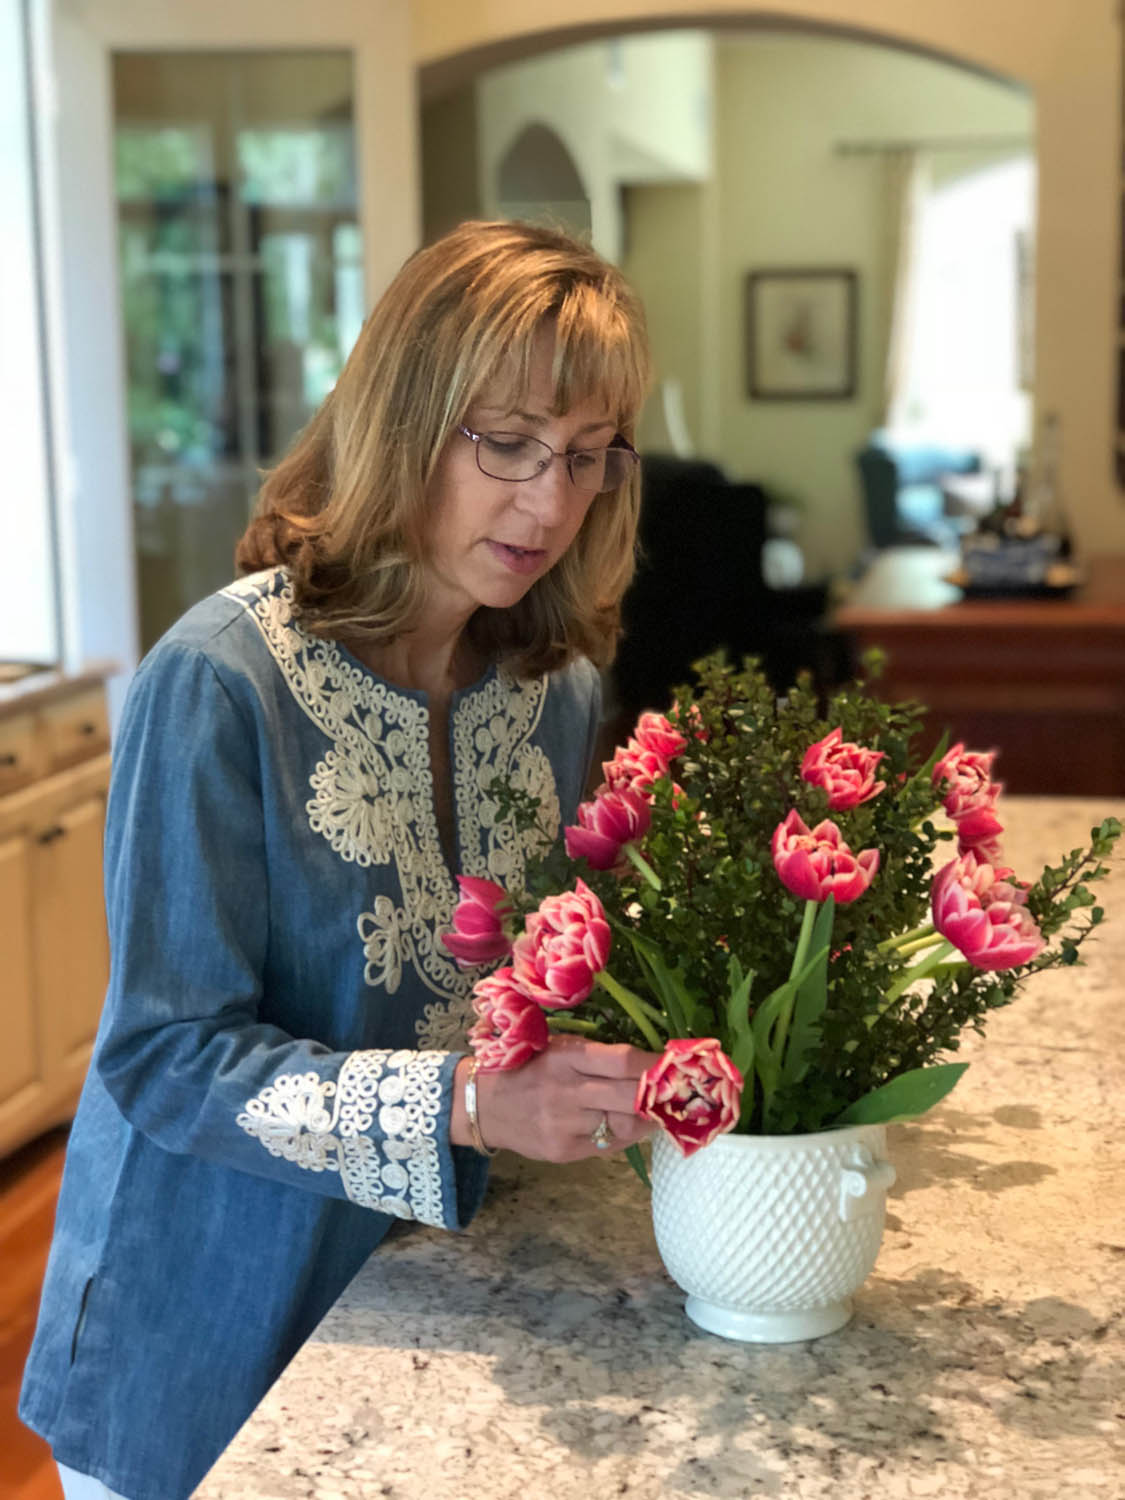 Ashley arranging tulips with boxwood cuttings in a vase